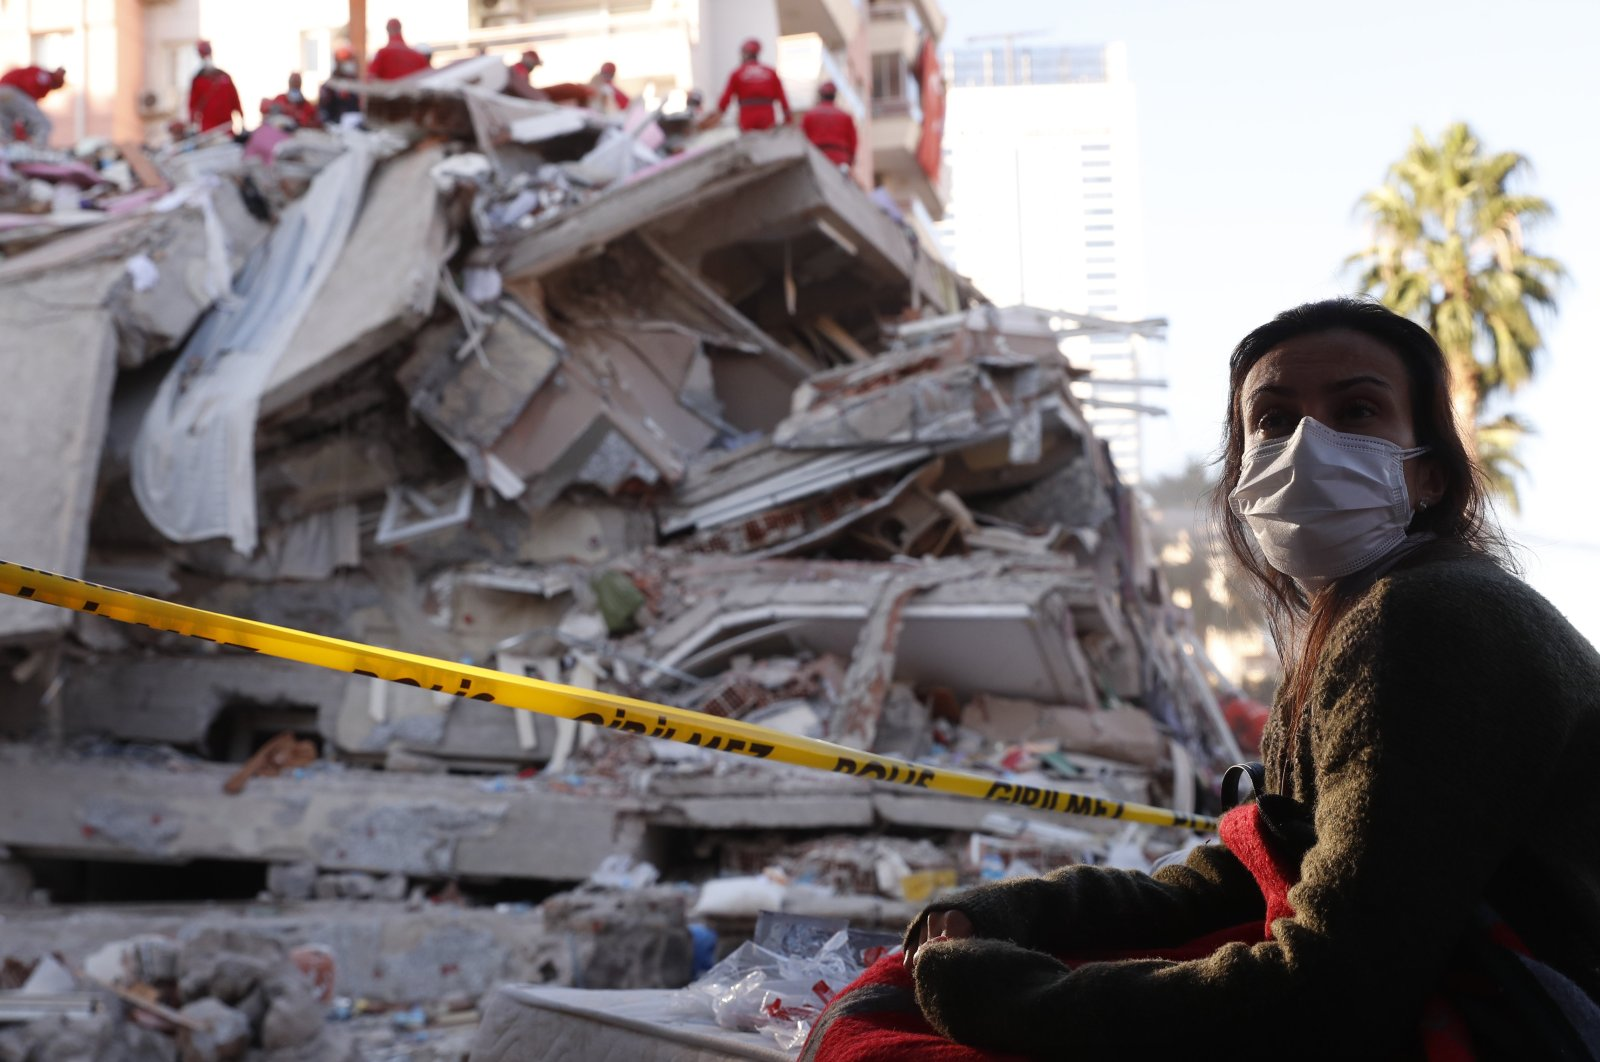 A woman watches search and rescue efforts in the debris of a collapsed building, in Izmir, western Turkey, Oct. 31, 2020. (AP PHOTO)